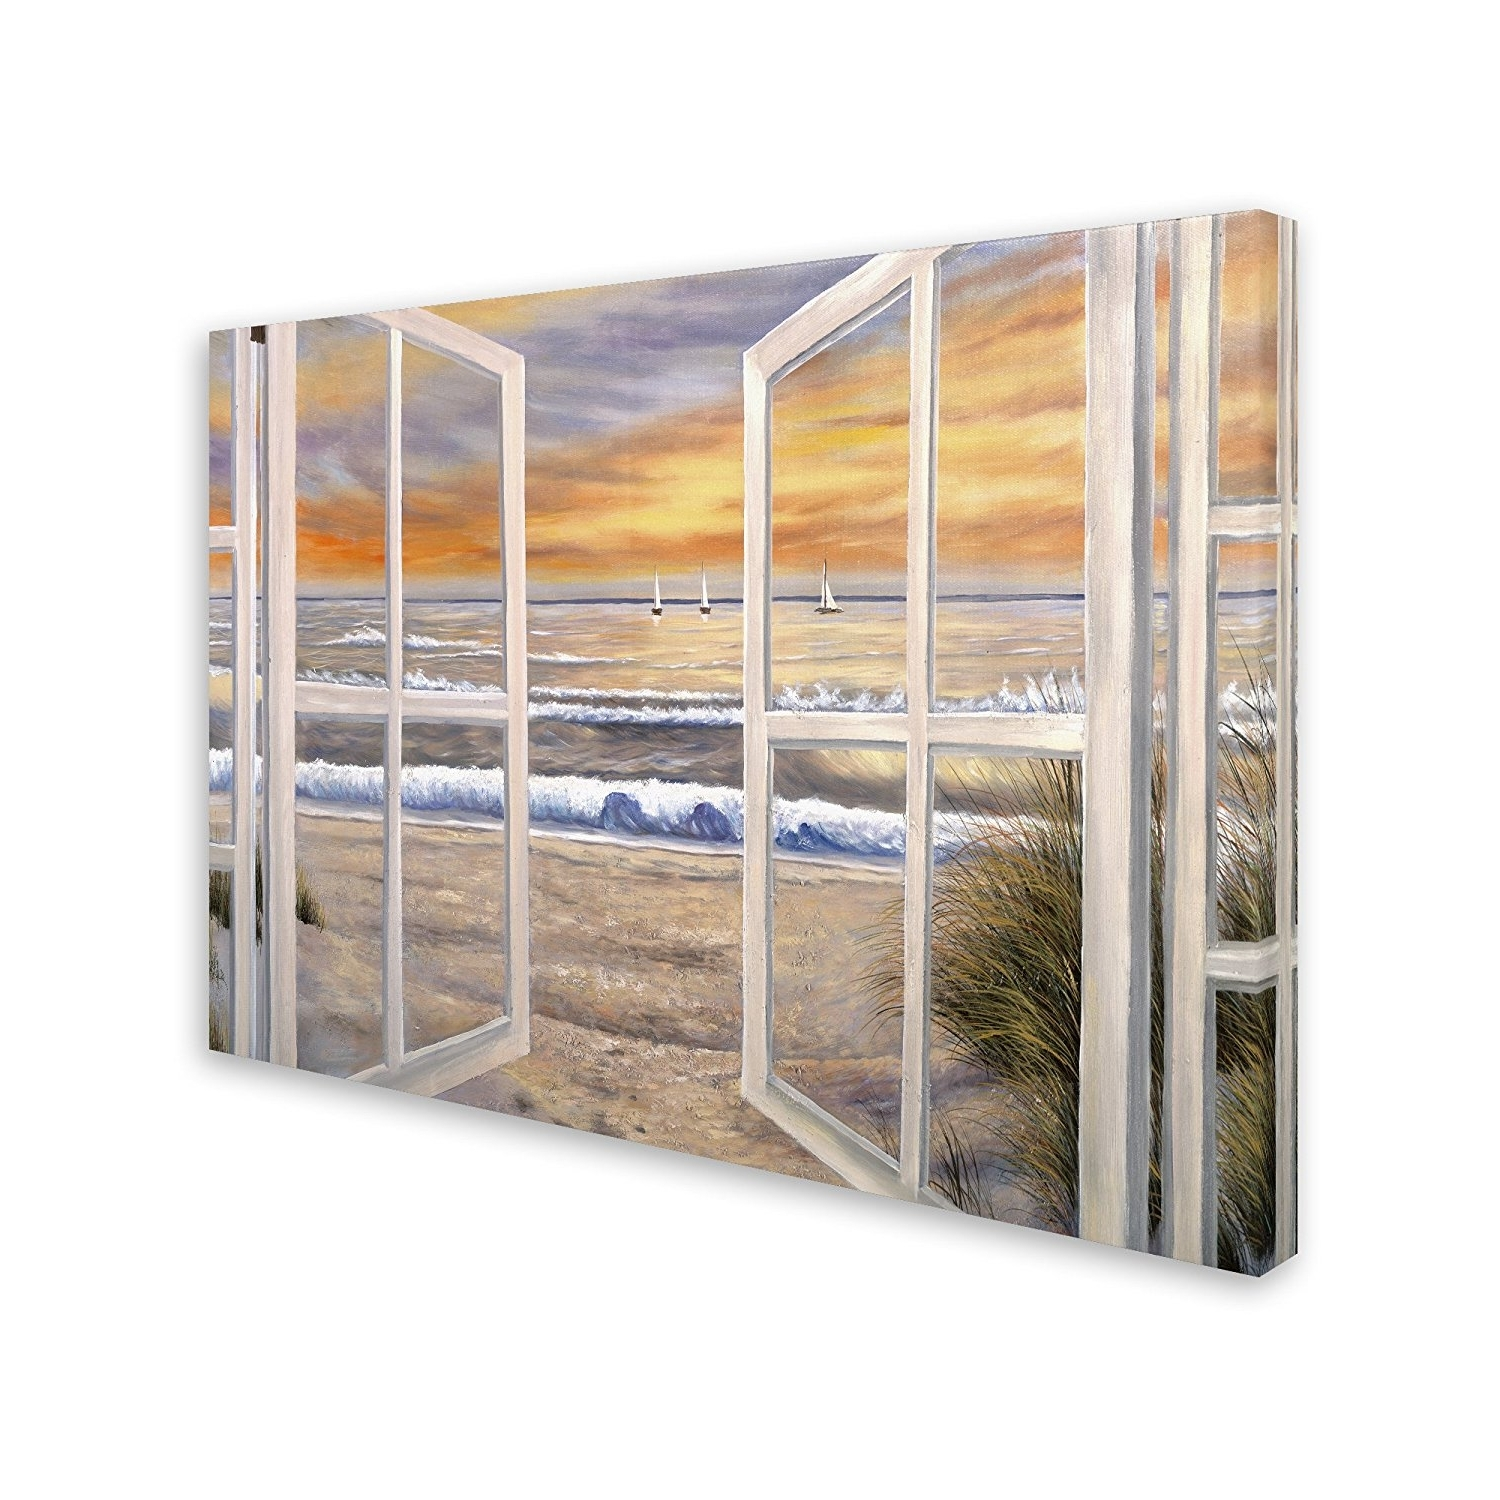 Widely Used Amazon: Elongated Windowjoval, 35x47 Inch Canvas Wall Art With Joval Canvas Wall Art (View 8 of 15)